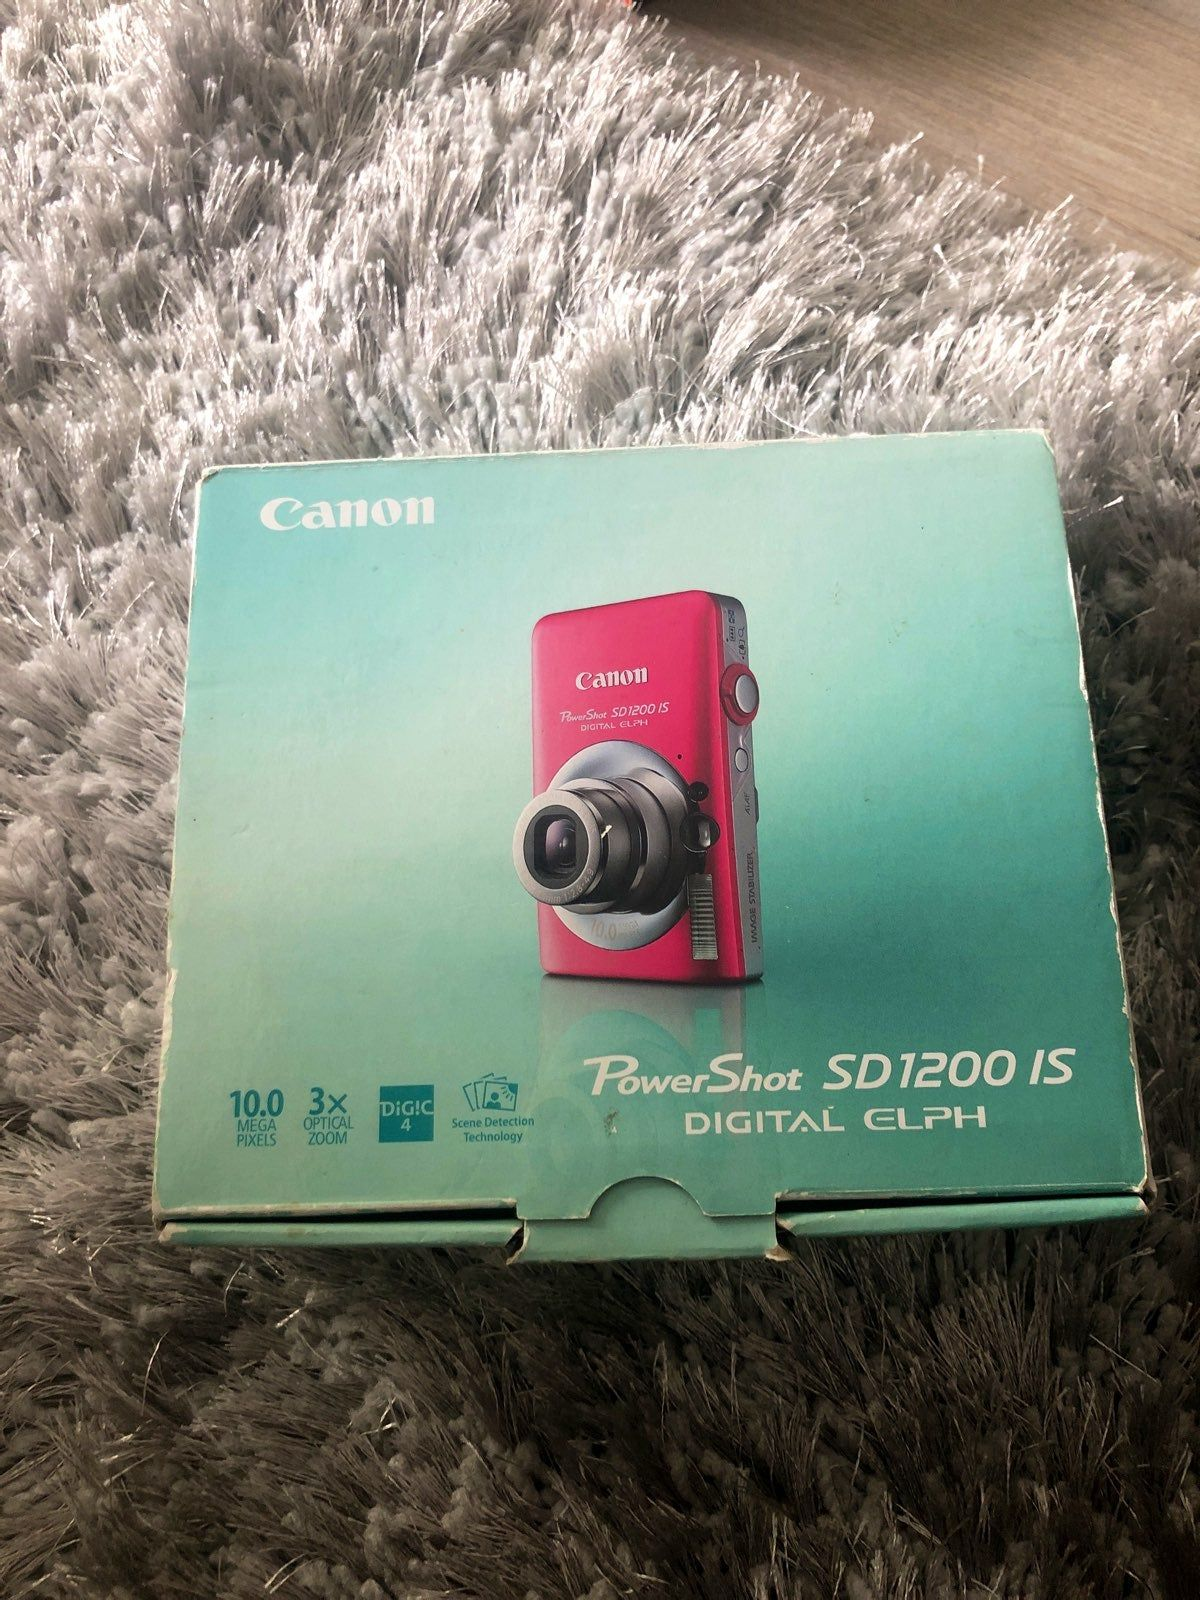 Color Hot Pink Works Great Can Be Used To Film Youtube Videos Save Money And Great Quality Camera Upload To Social Media Save T Powershot Hot Pink Pink